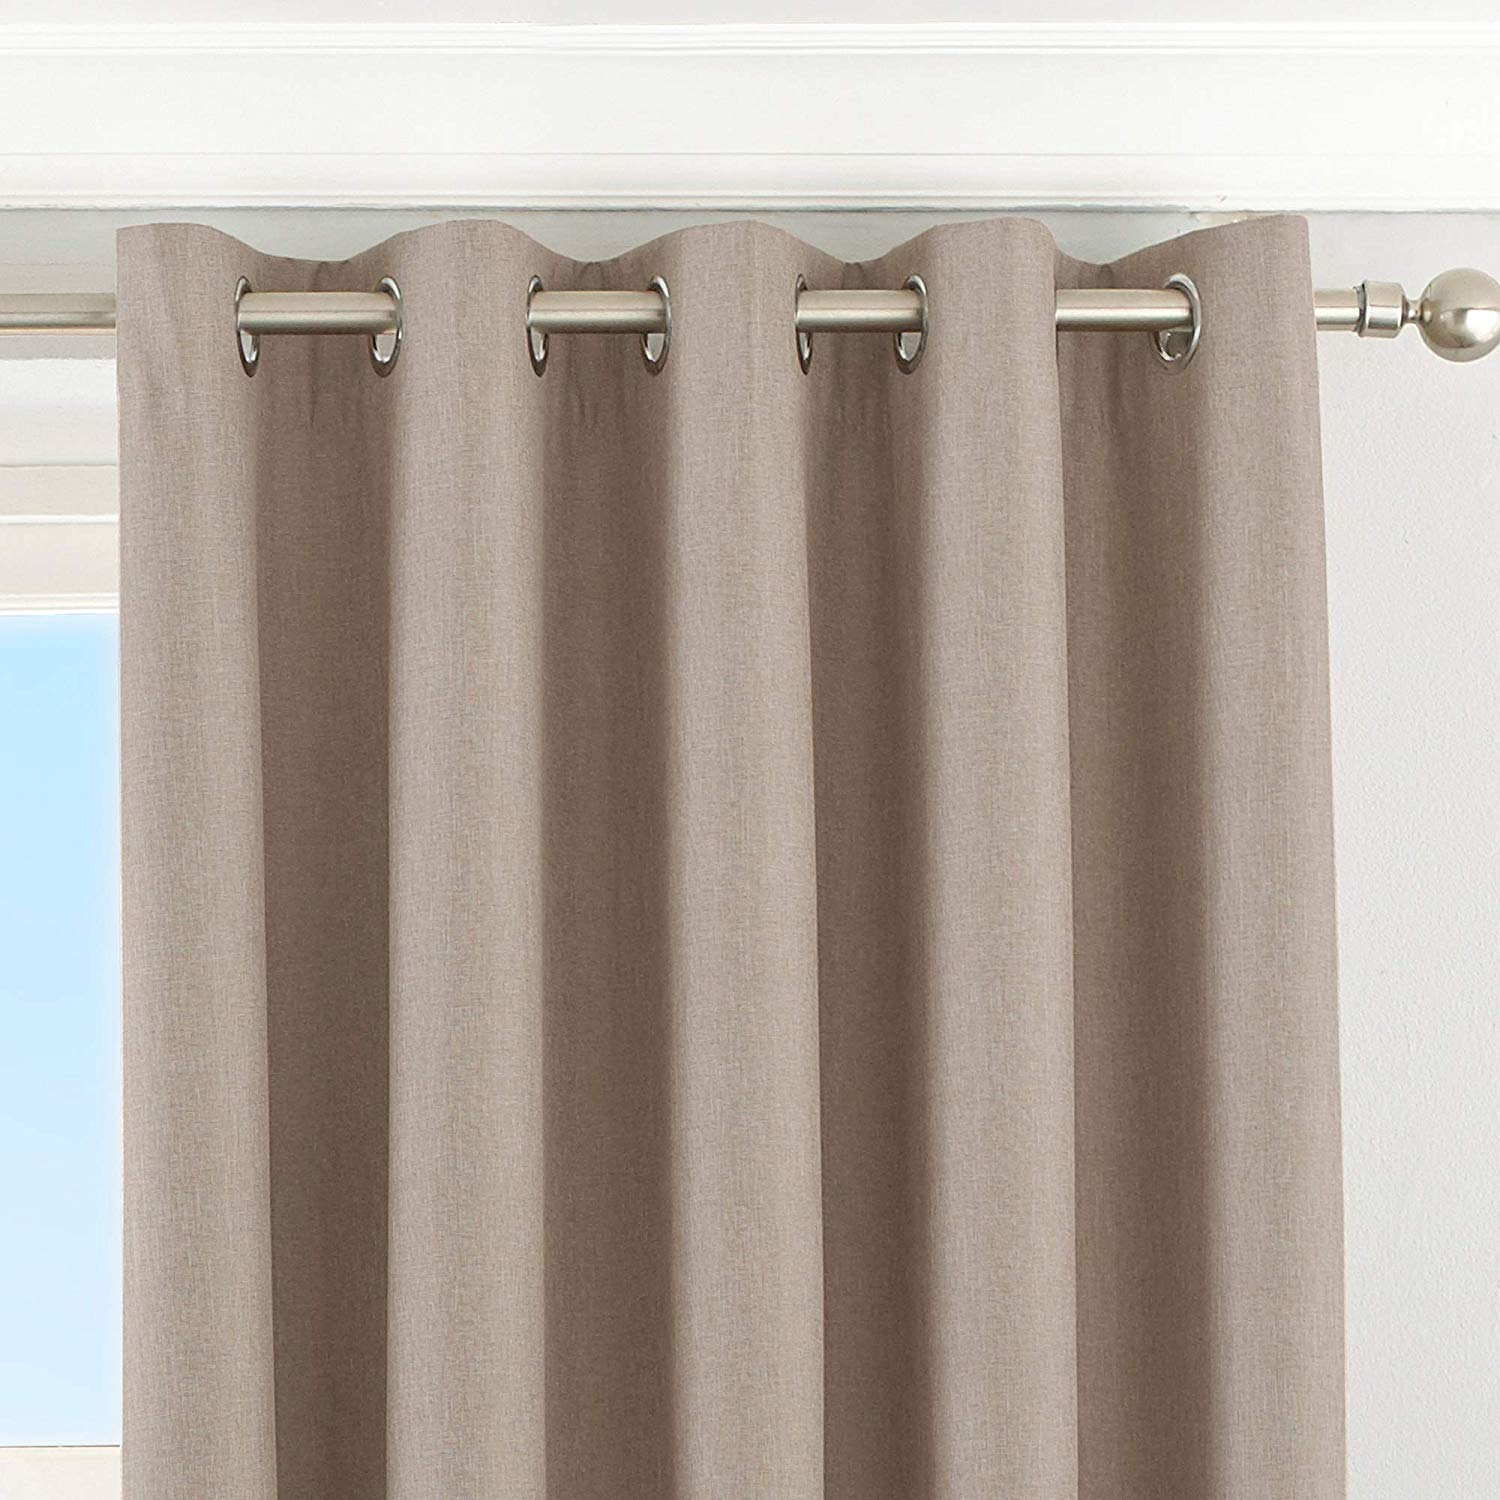 The Home Furnishings Company Natural Eyelet Blackout Curtains, Blind and Cushion